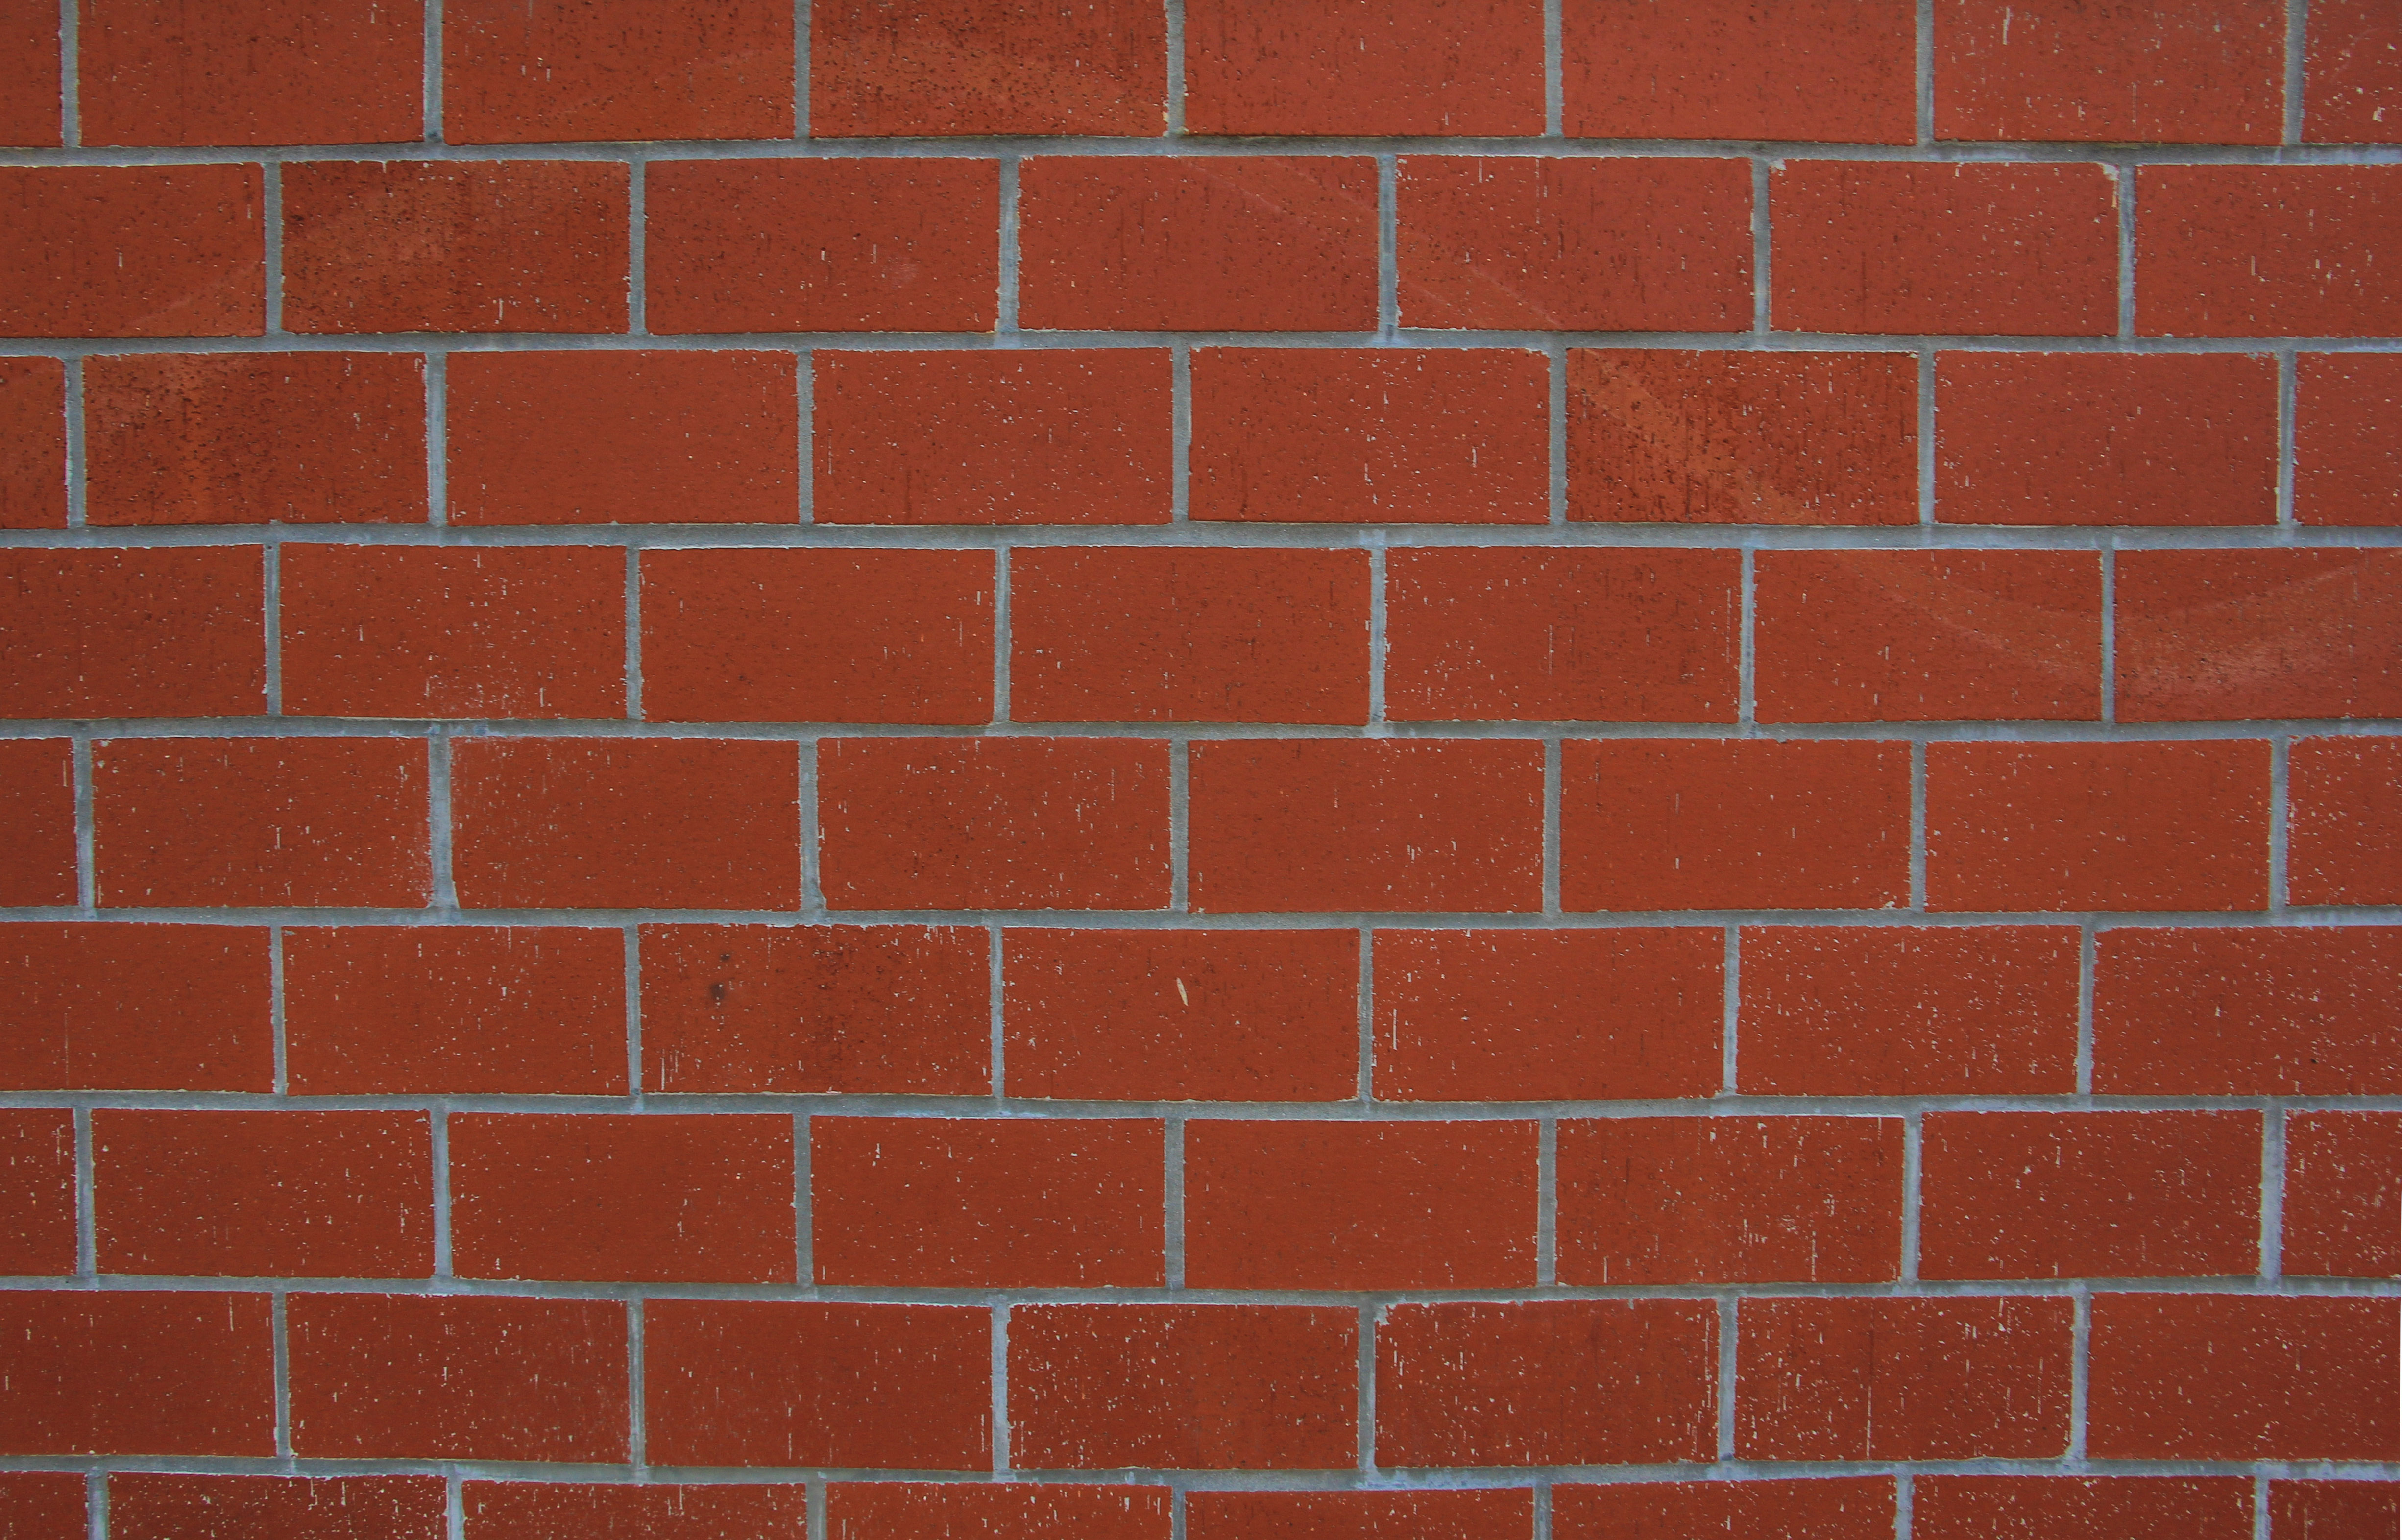 Brick Texture Red Wall Dark Masonry Pattern Wallpaper Stock